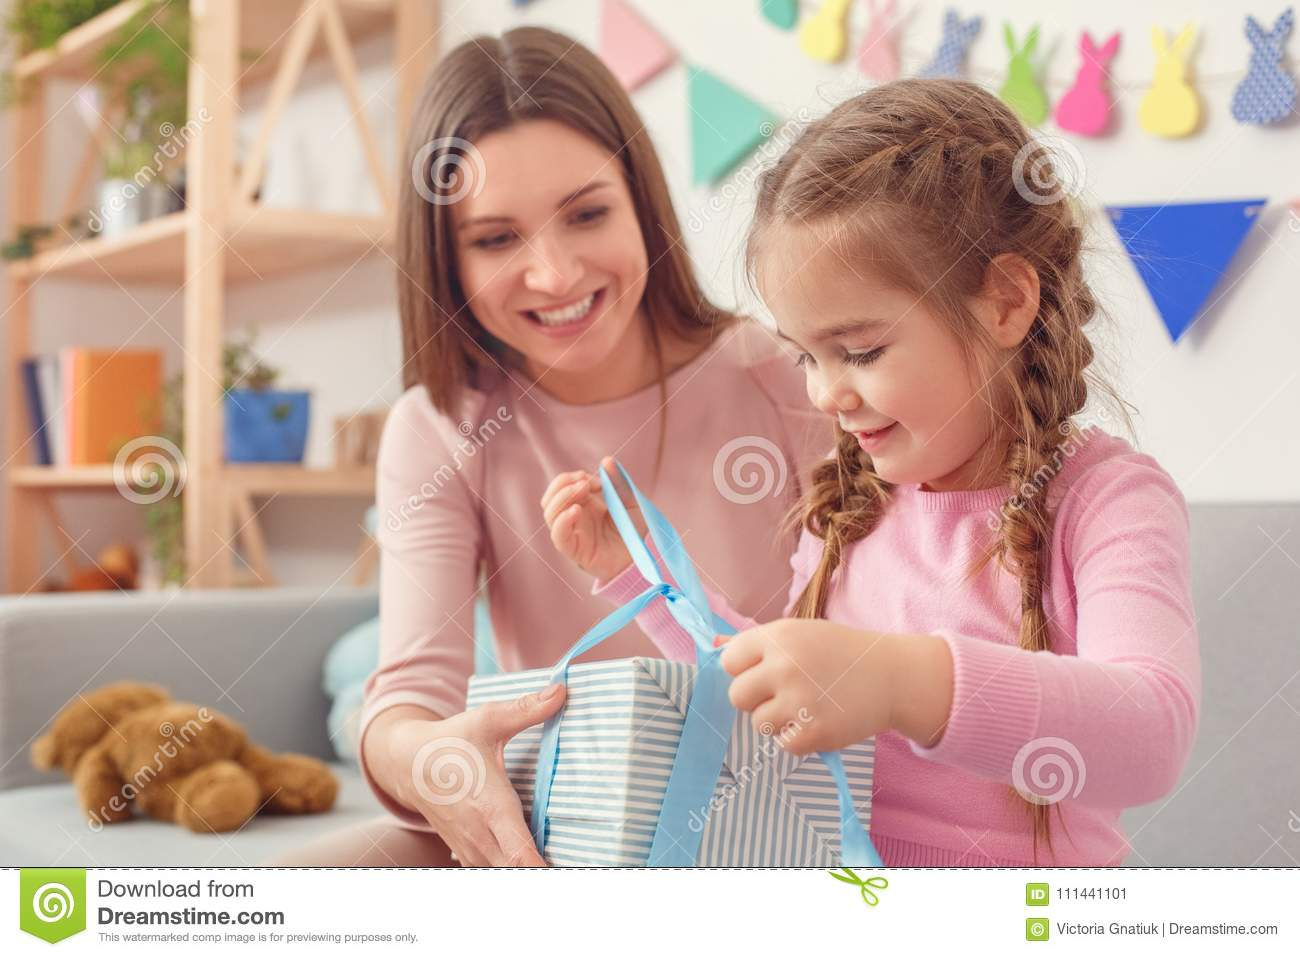 Young Mother And Little Daughter Together At Home Celebration Concept Girl Holding Birthday Present Opening Ribbons Excited